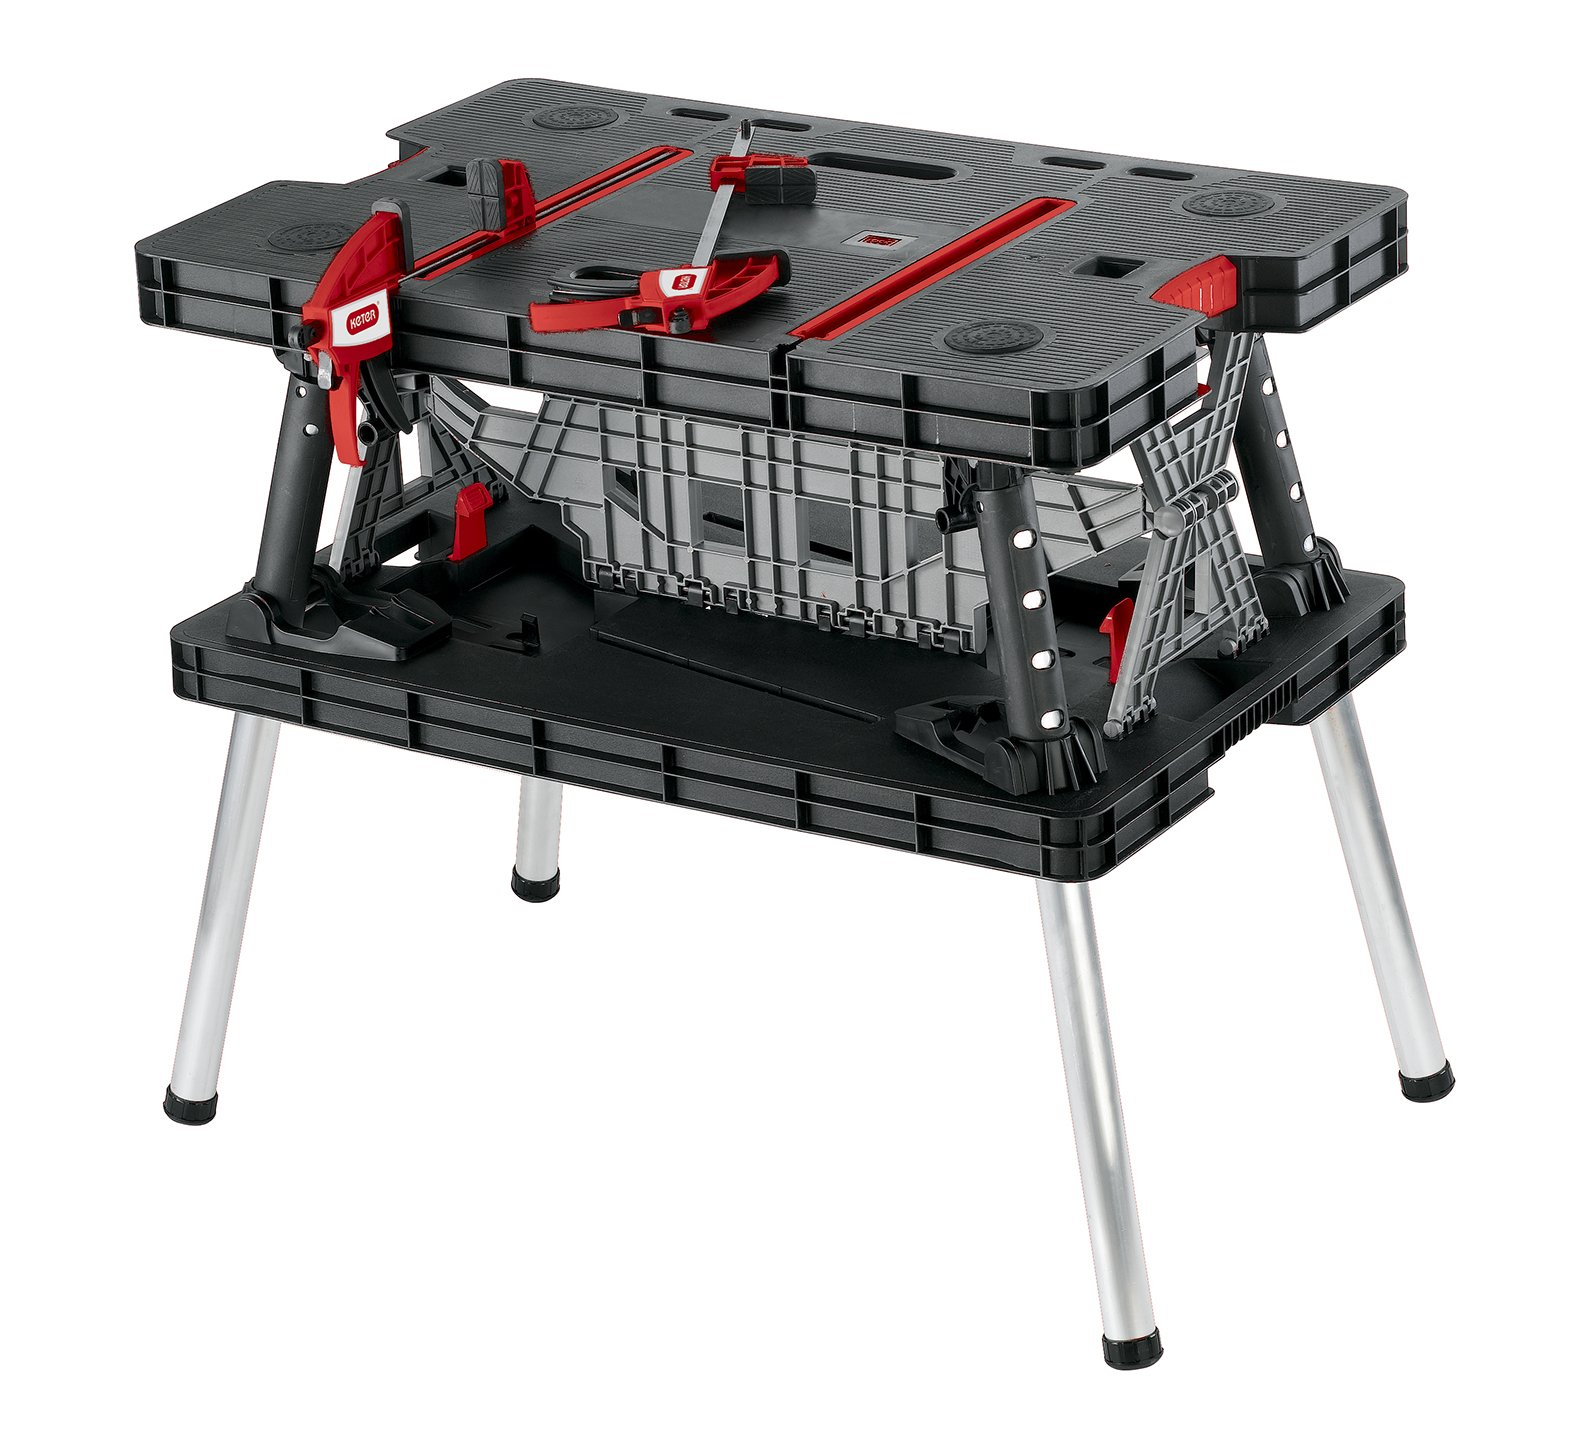 Keter 17182239 Master Pro DIY Folding Work Table, 85 x 55 x 75.5 cm - Black/Red by Keter